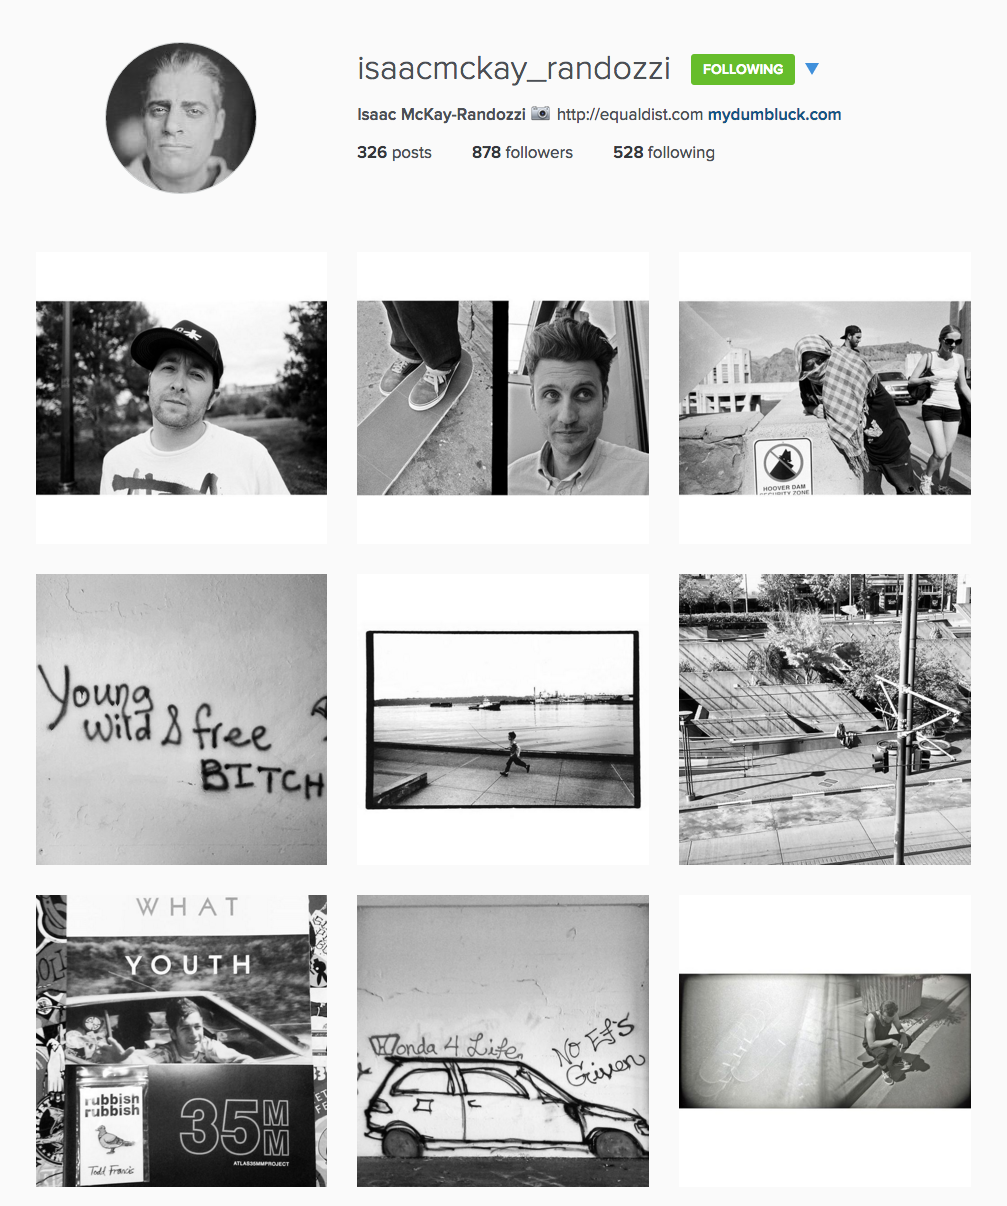 Tips for artists getting started on Instagram - Example of Isaac McKay-Randozzi's account